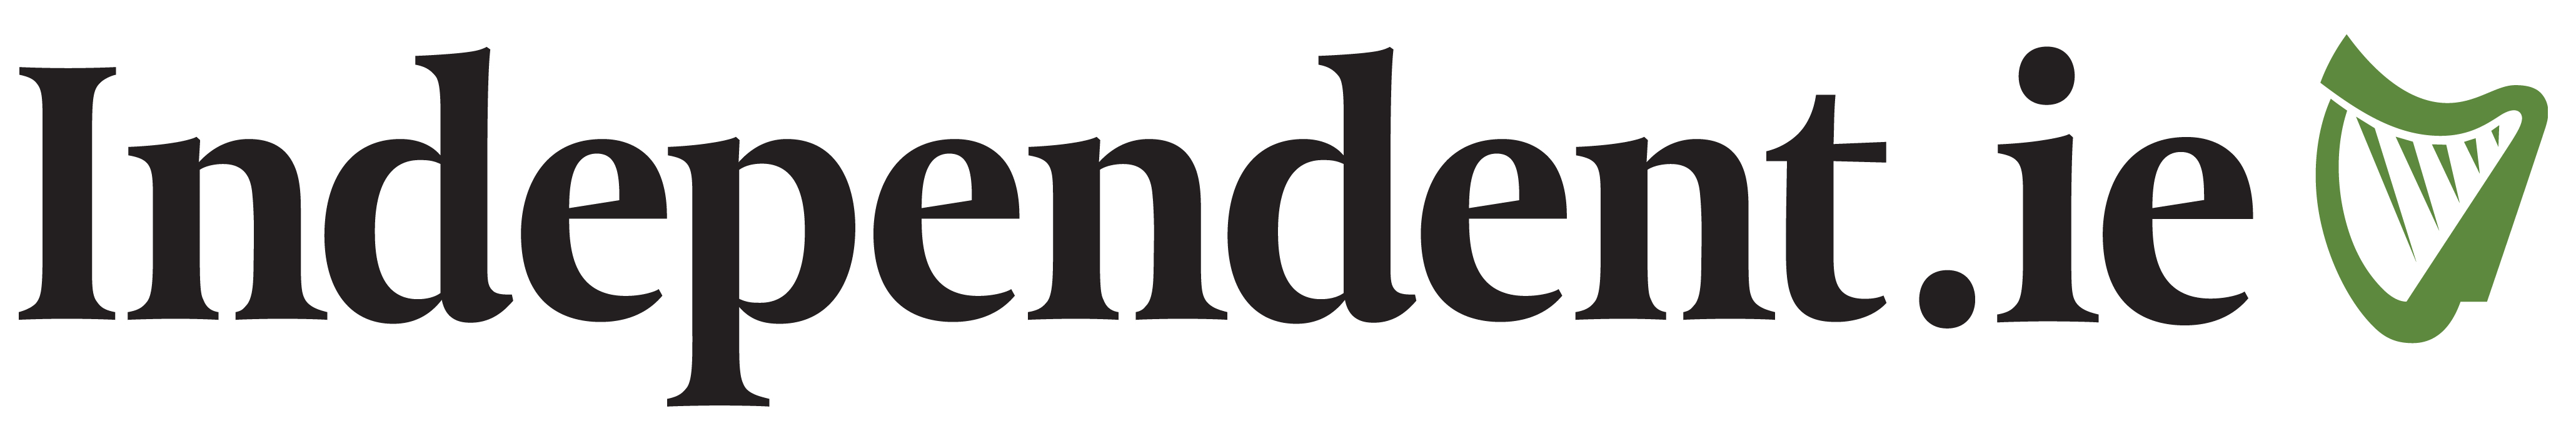 Image result for the irish independent logo